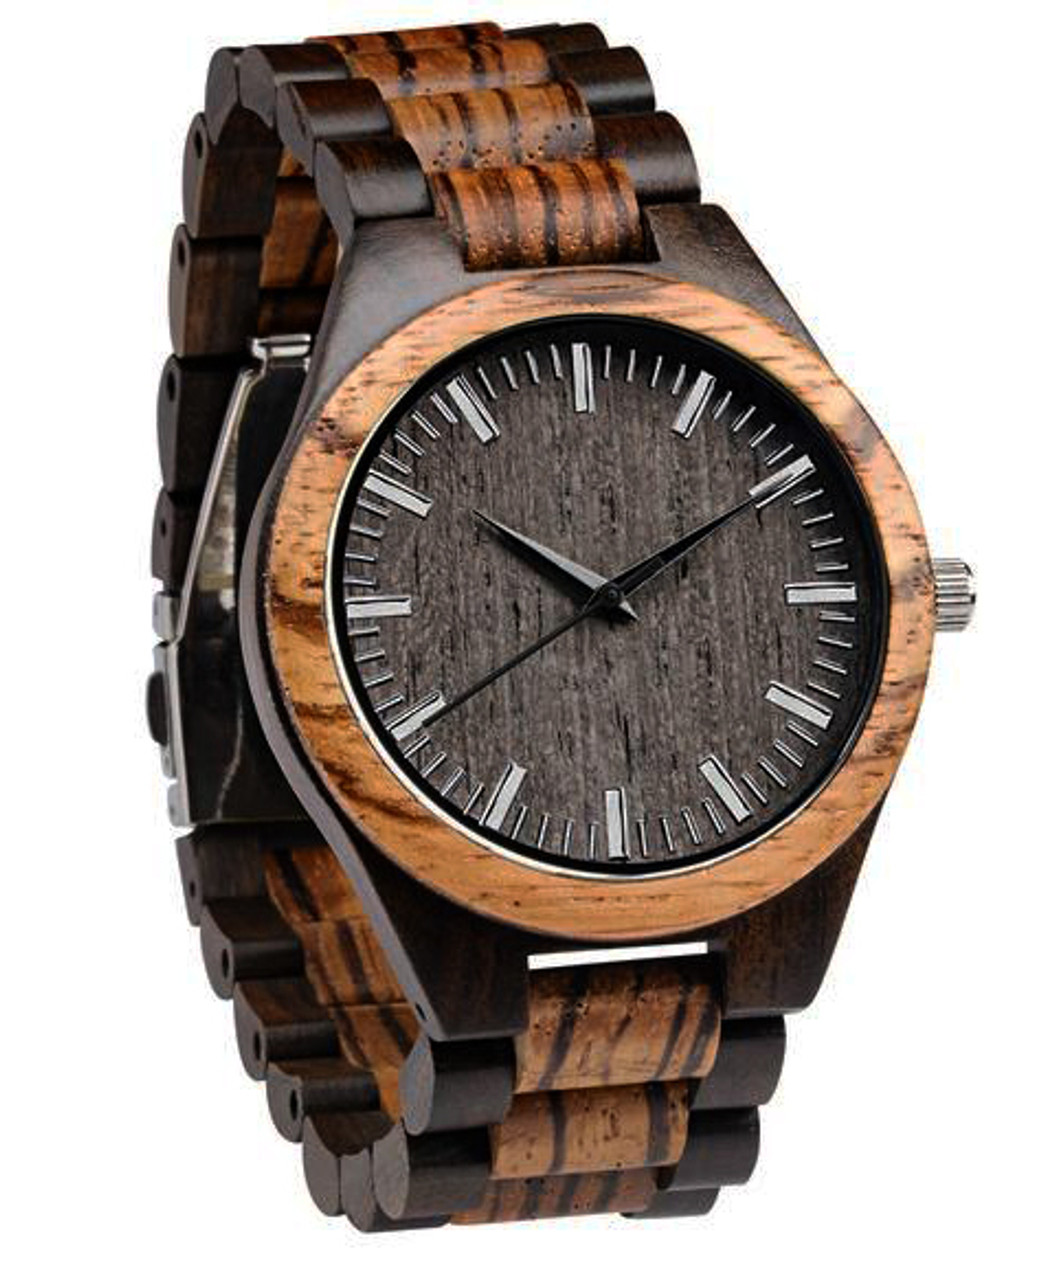 GRPN Italy - Engraved  Watch W#73